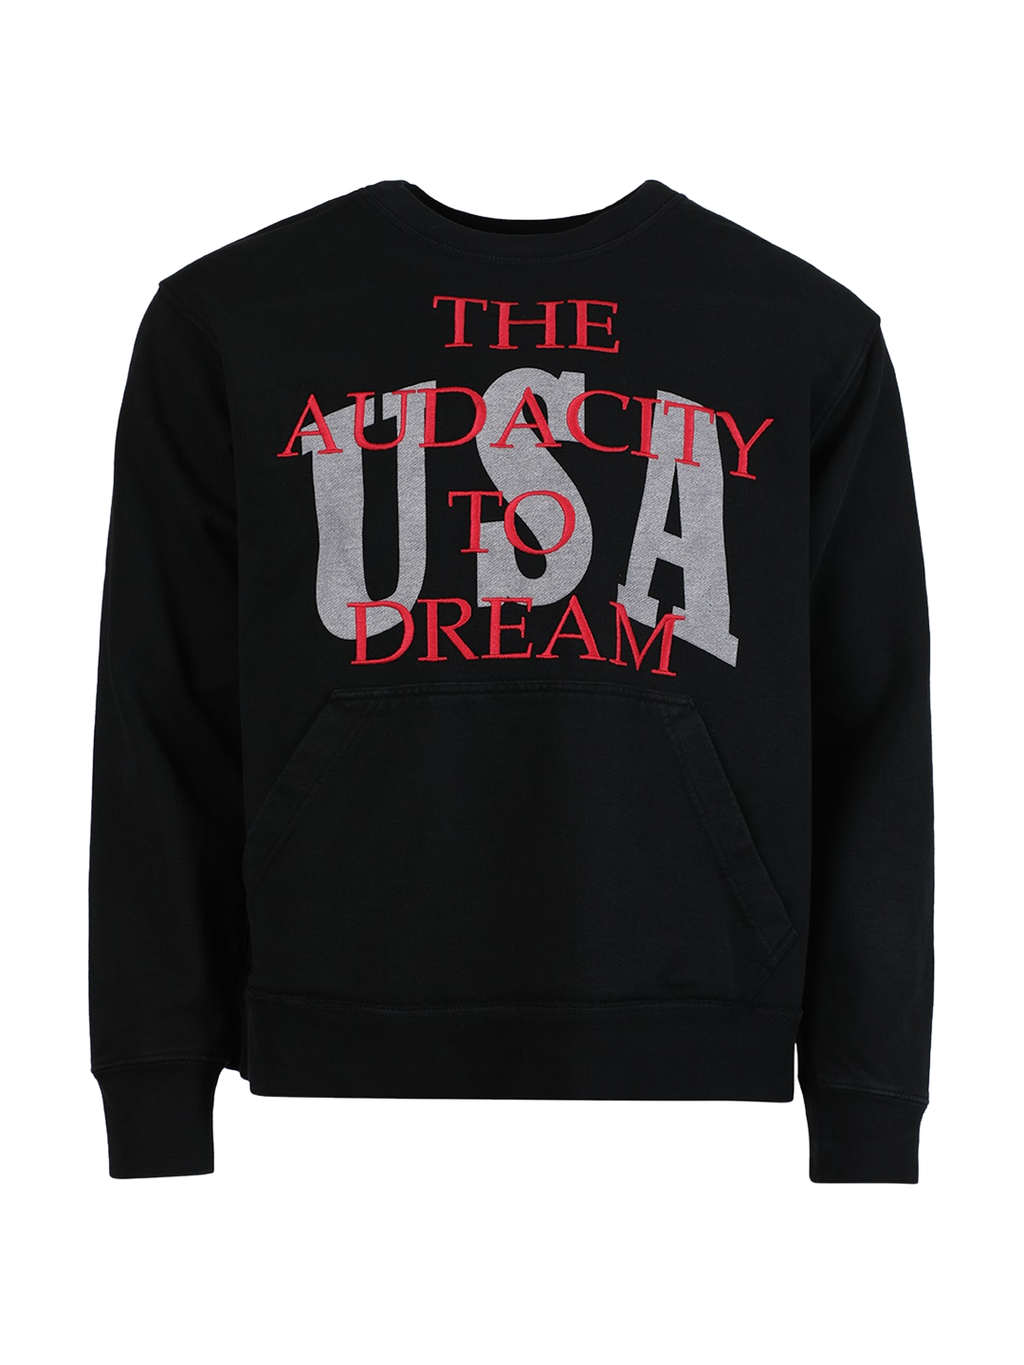 Black Dreamers Crewneck Sweatshirt